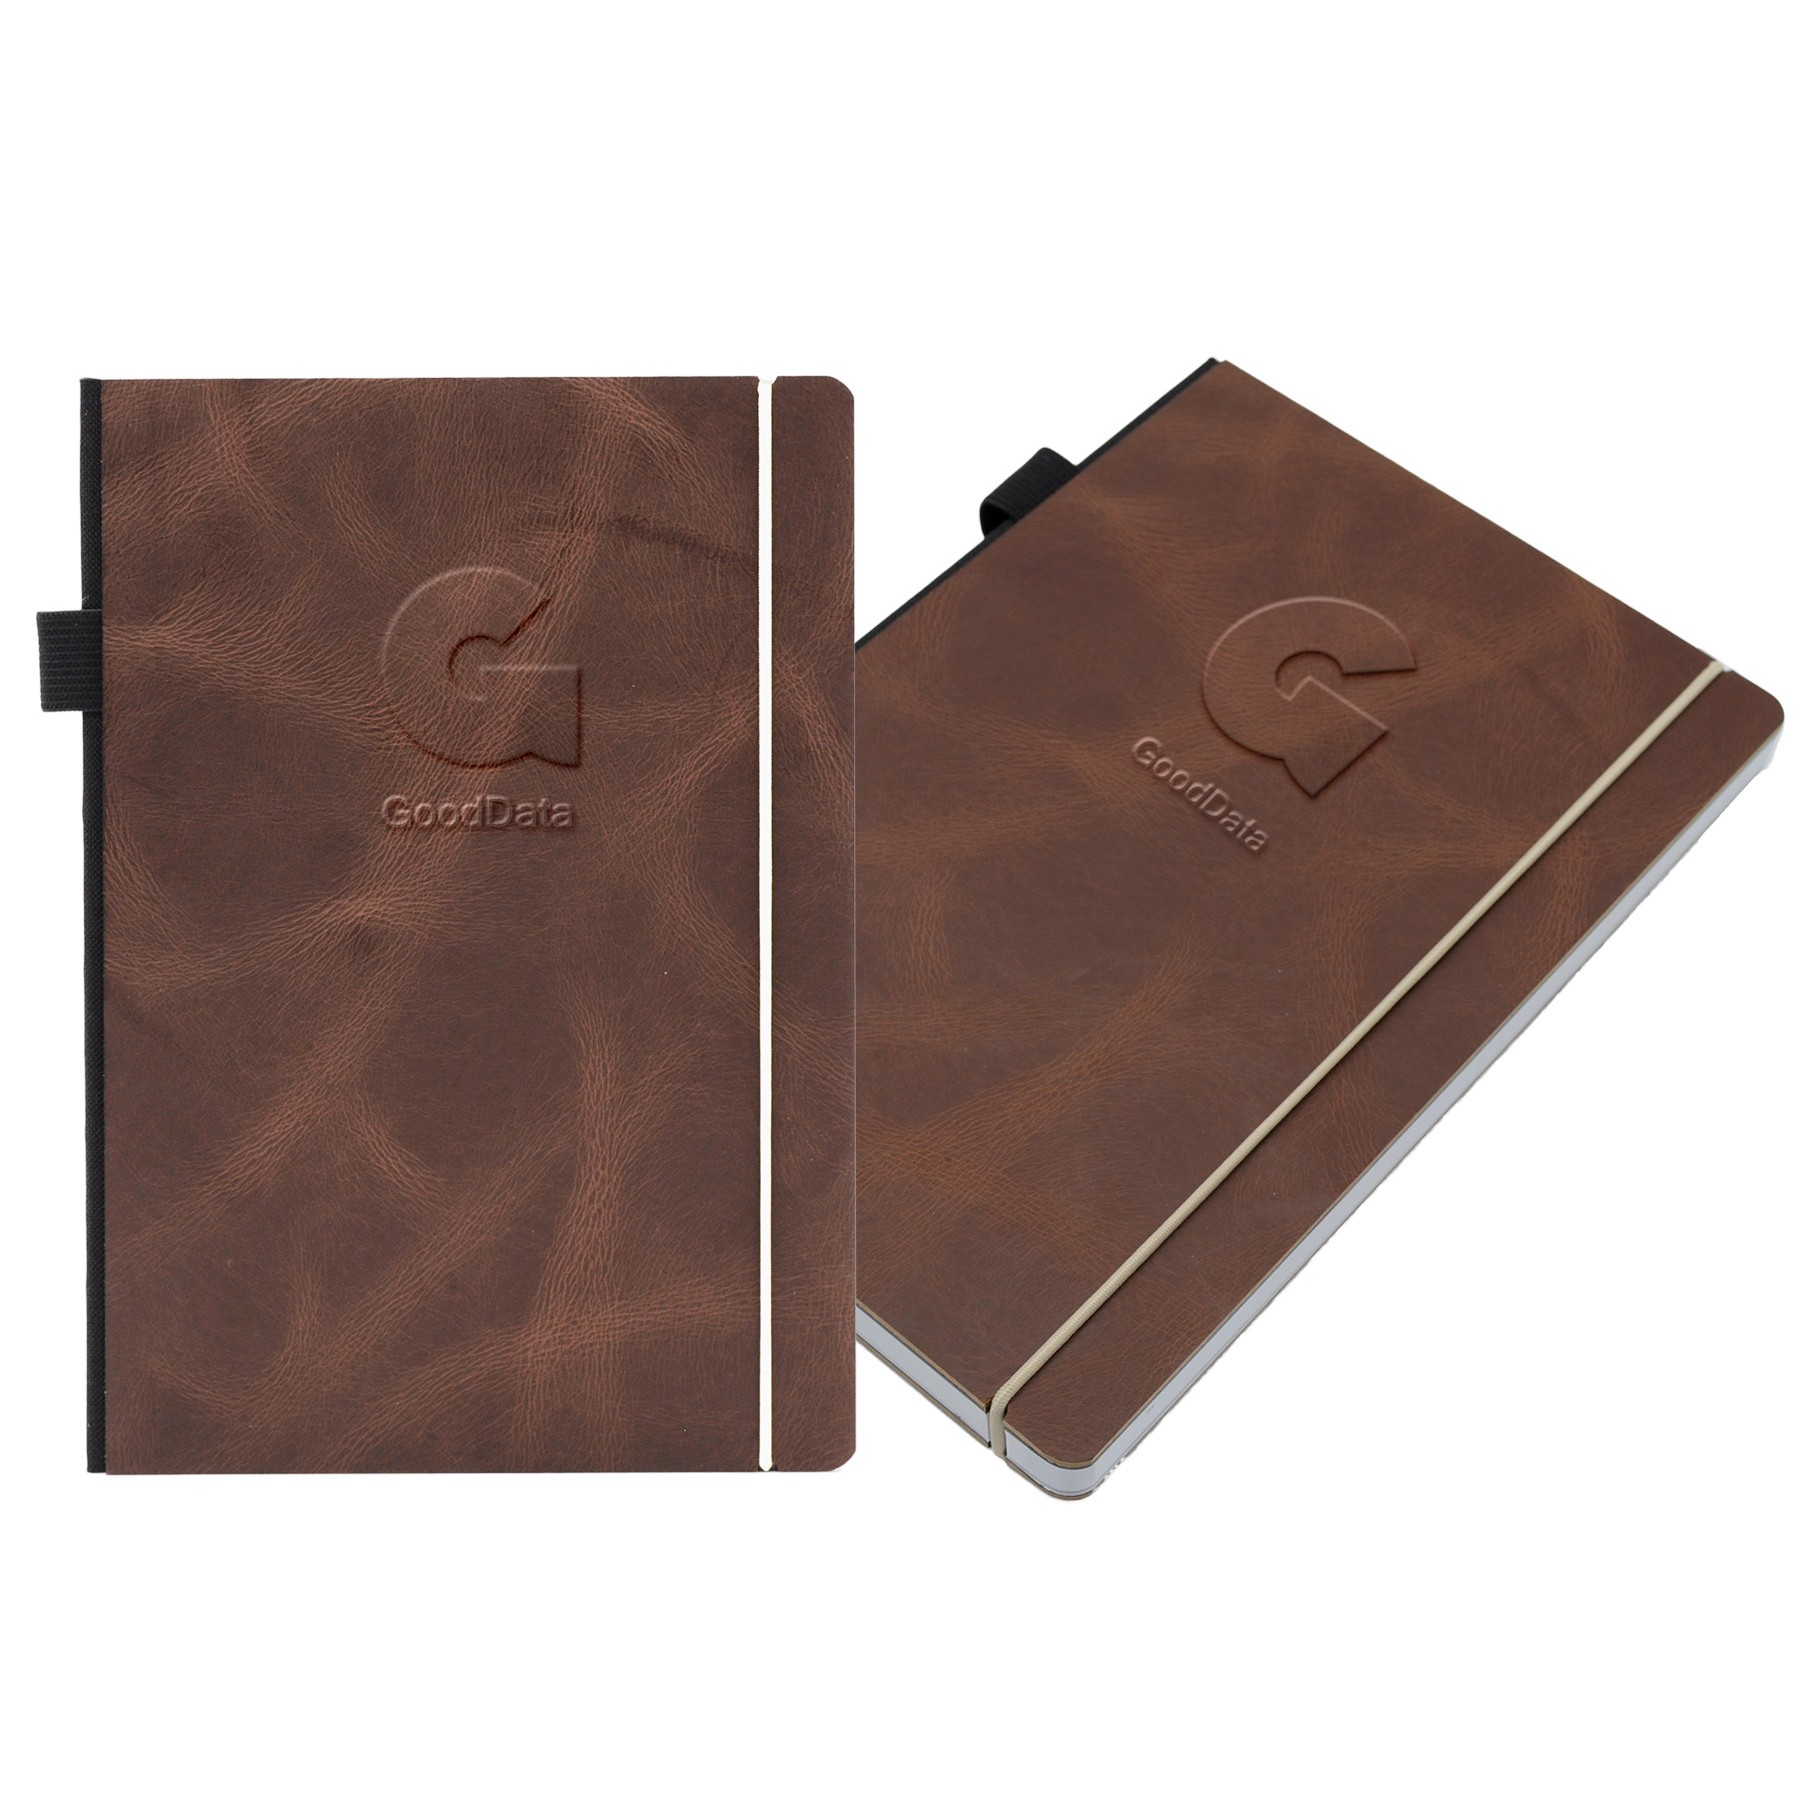 Contempo Bookbound Leather Cover Journal with Matching Color Elastic Closure